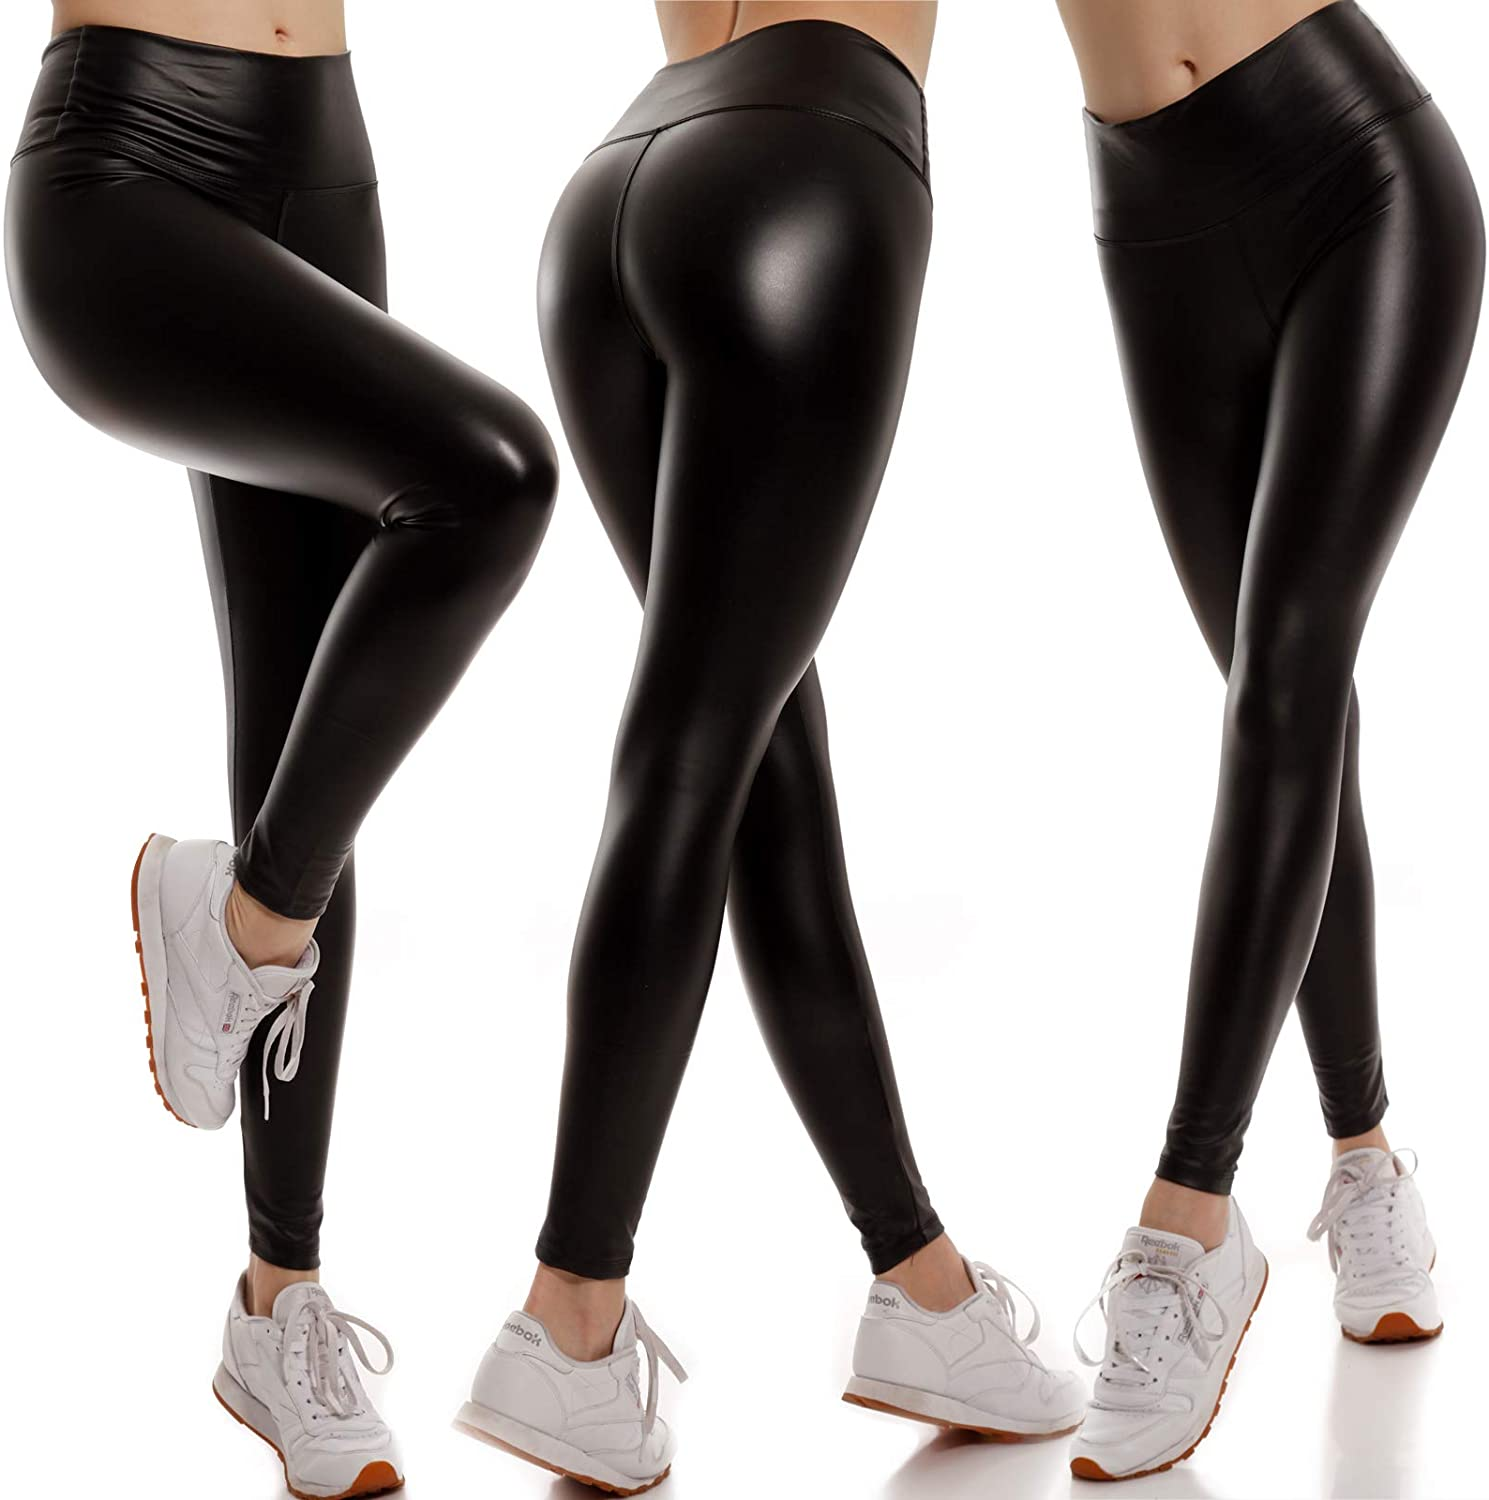 YC Fashion & Style Women's Faux Leather Leggings High Waist Shaper Jeggings Skinny Slim Fit Faux Leather Trousers with Elastic Waistband